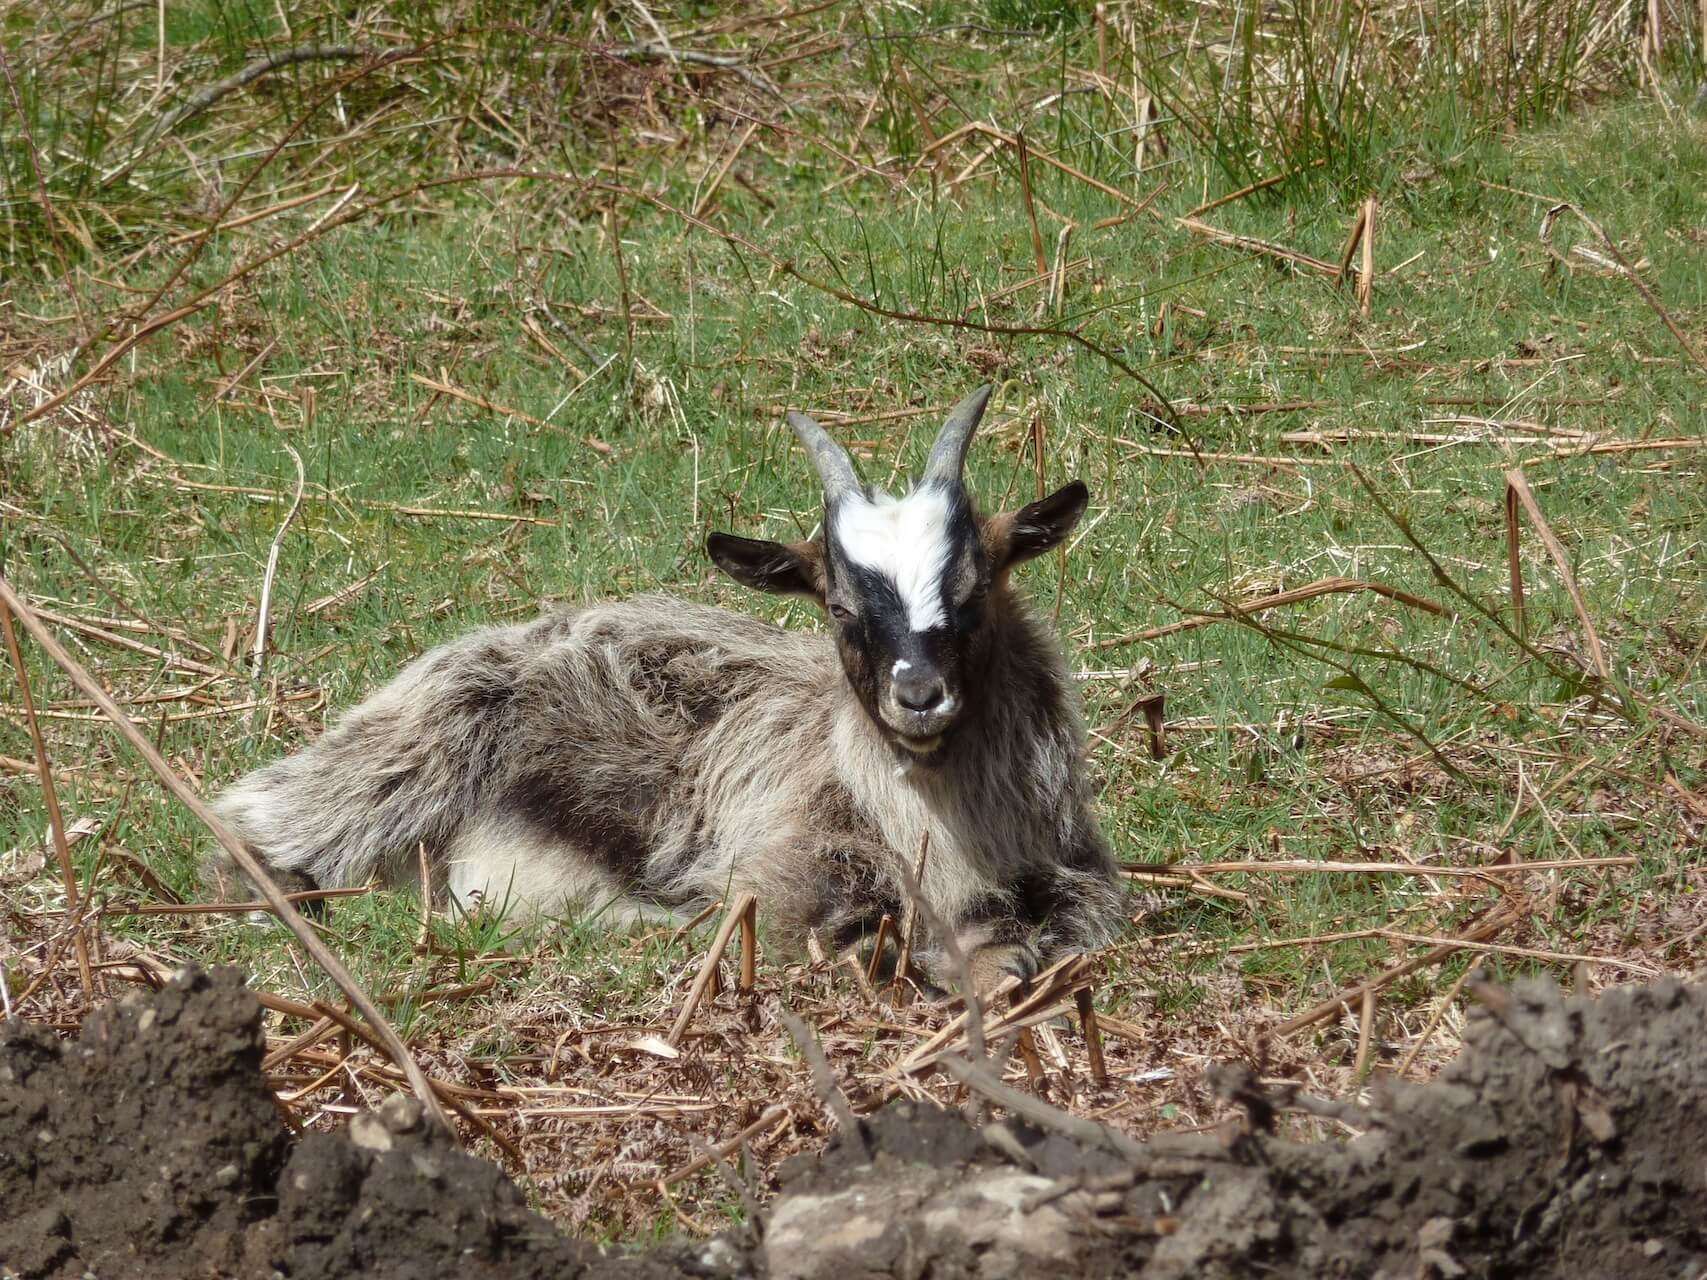 A wild goat relaxes near Inversnaid